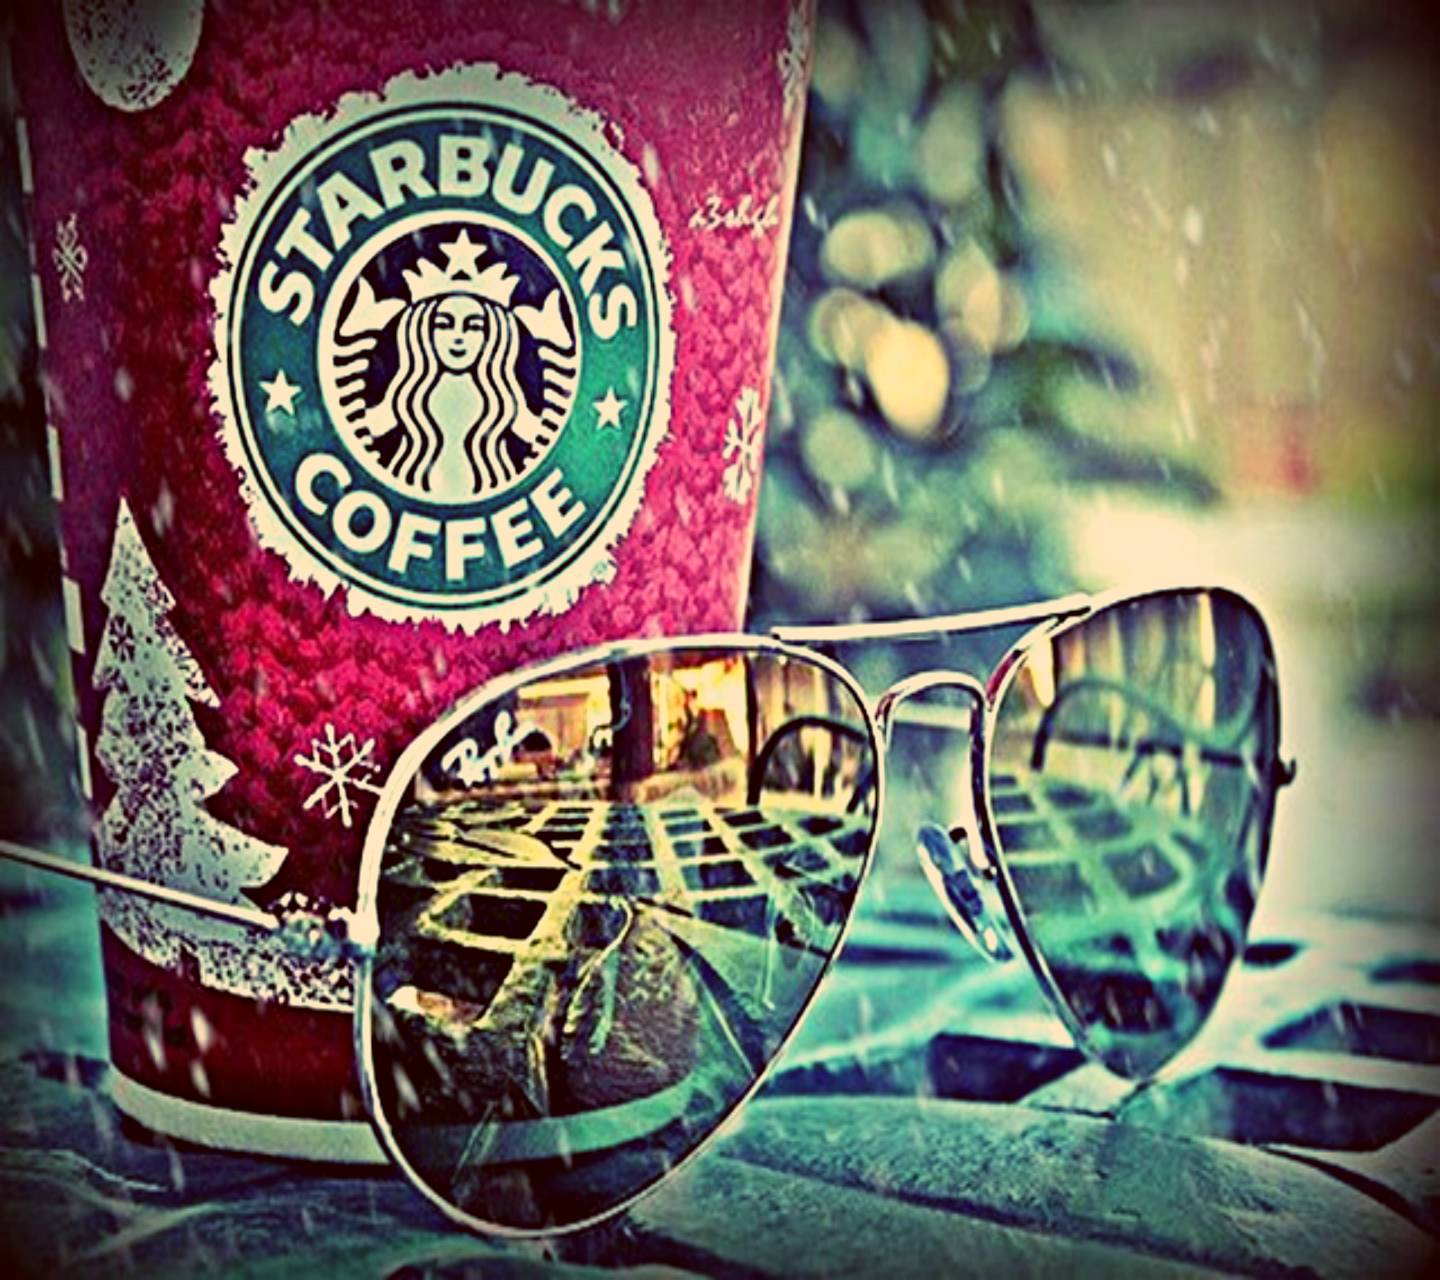 starbucks coffee wallpapers iphone | walljpeg.